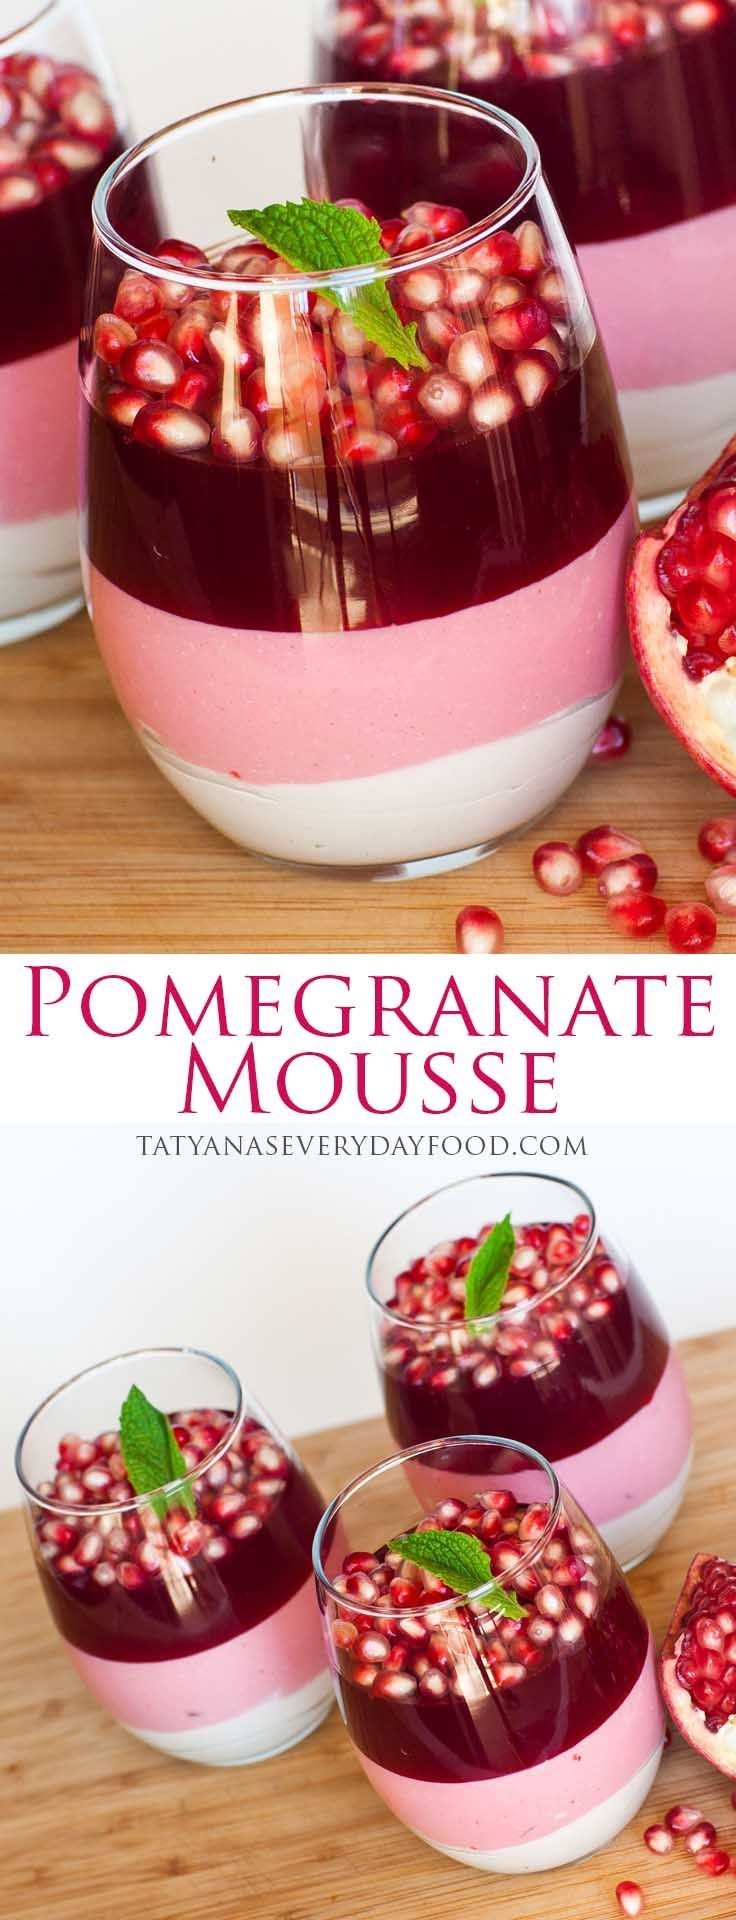 Wat een mooi en lekker toetje! En volgens mij niet eens zo heel lastig te maken. Triple Layer Pomegranate Mousse Dessert - No-Bake! With video recipe by Tatyana's Everyday Food